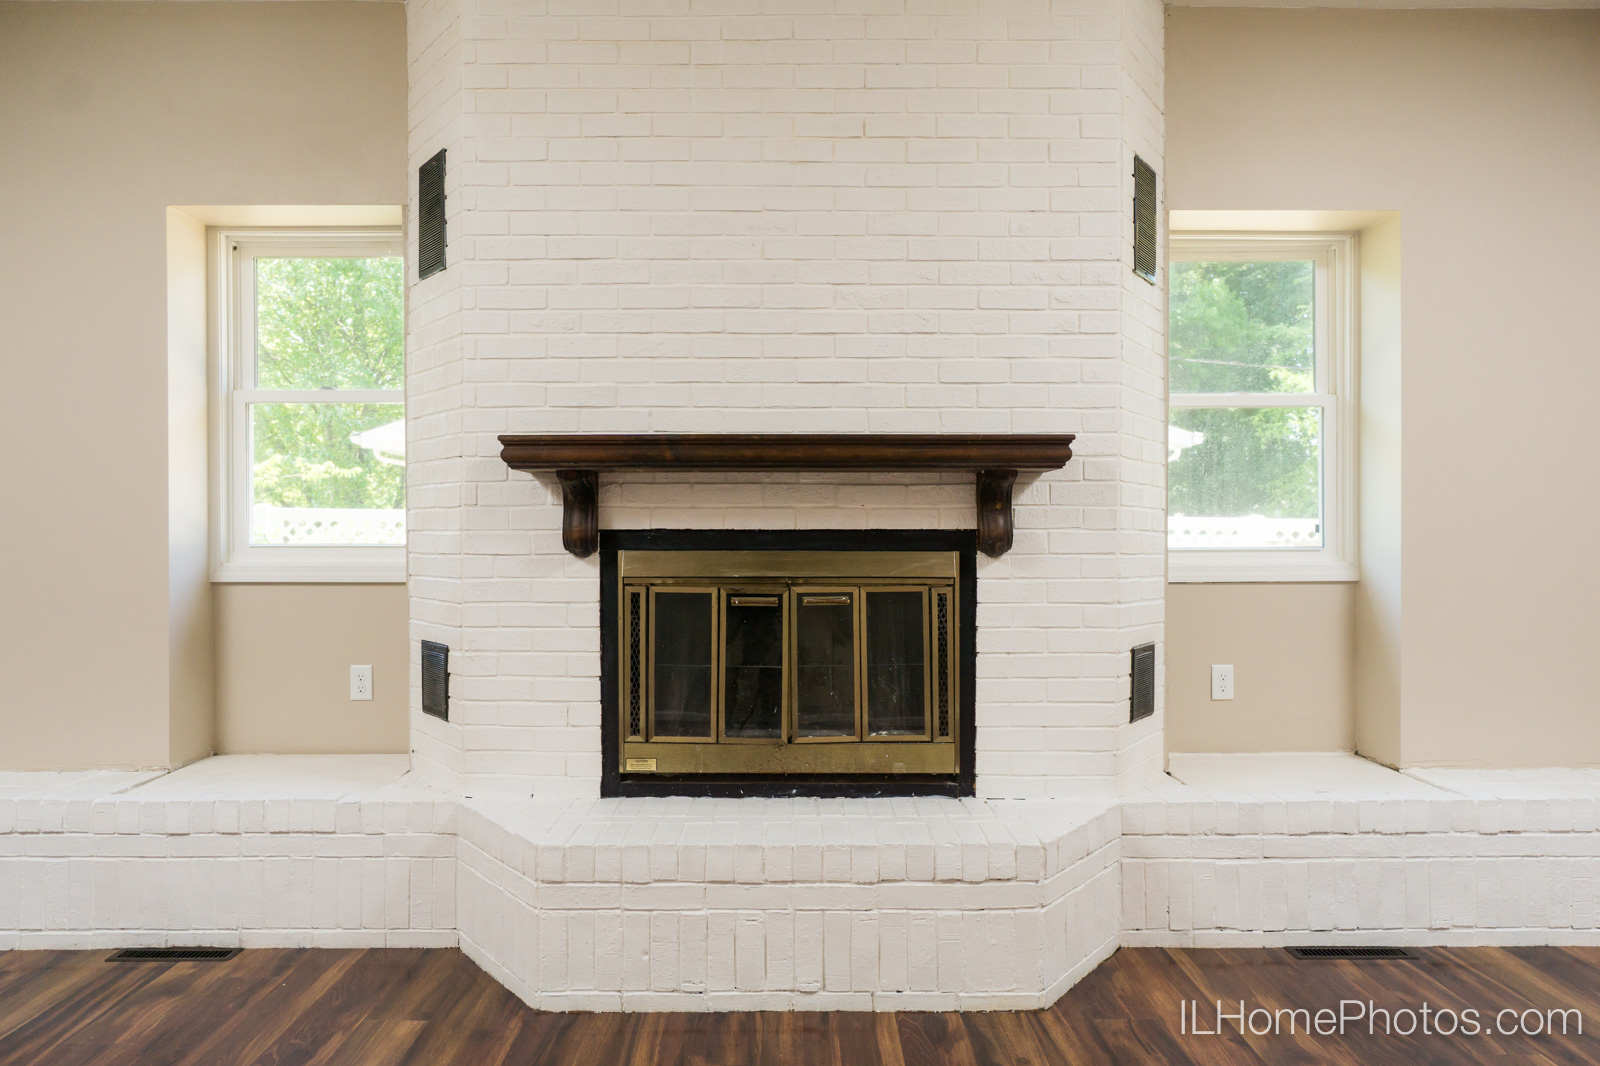 Interior living room photograph for real estate in Springfield :: Illinois Home Photography by Michael Gowin, Lincoln, IL